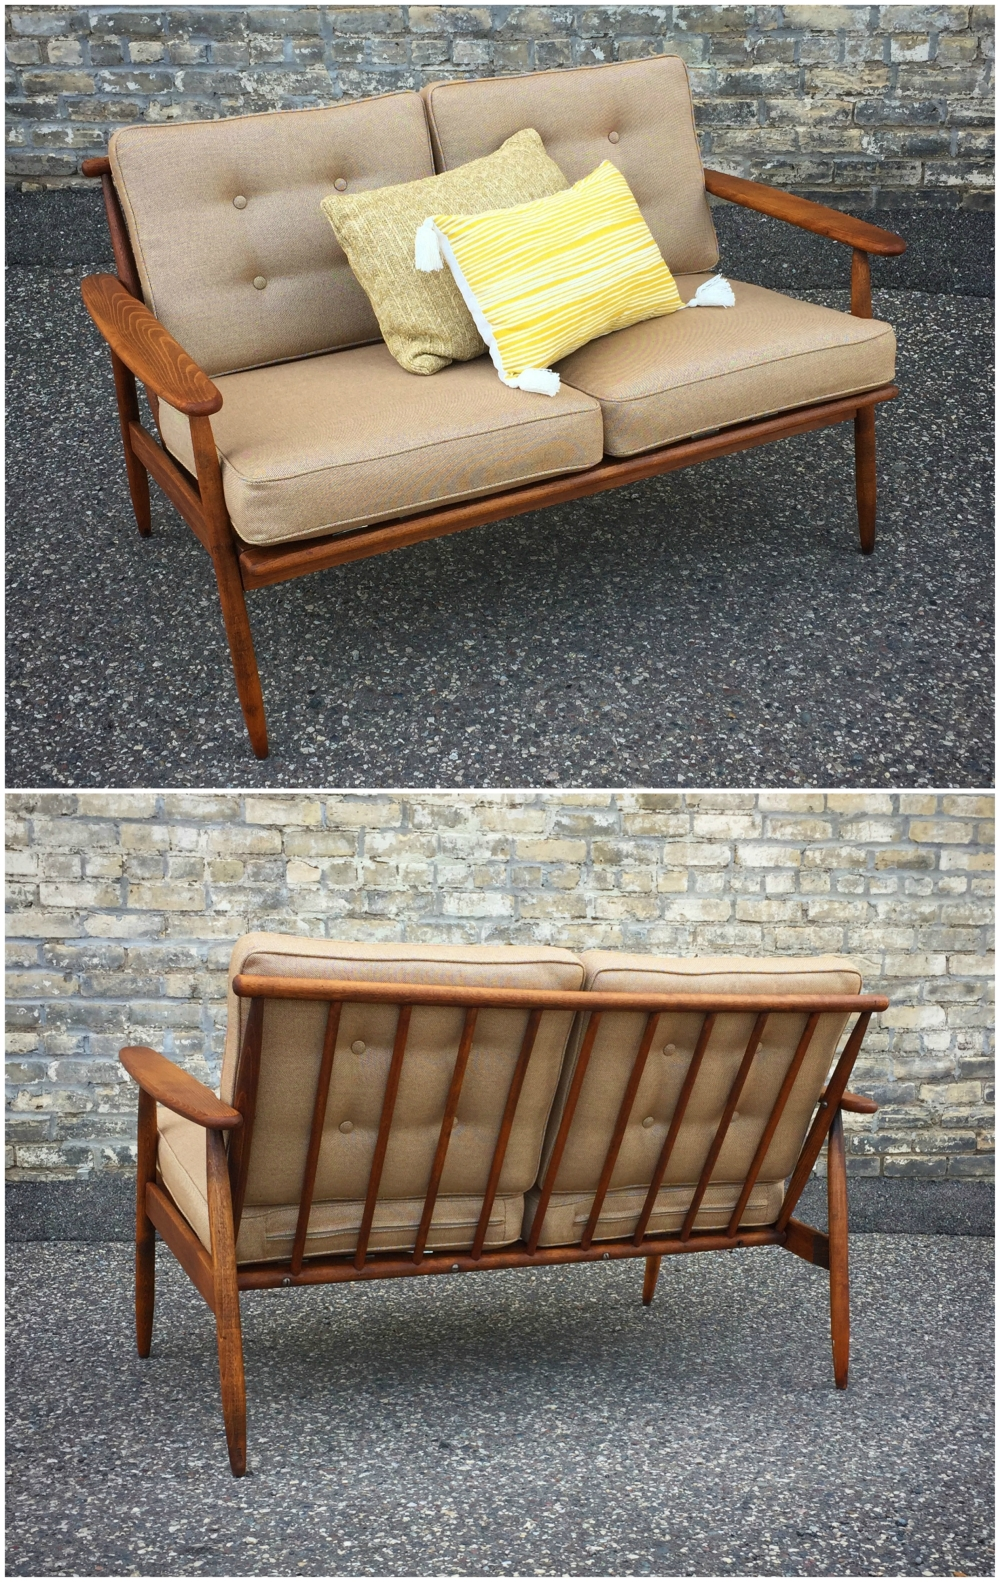 Mid-century loveseat - restored with new upholstery